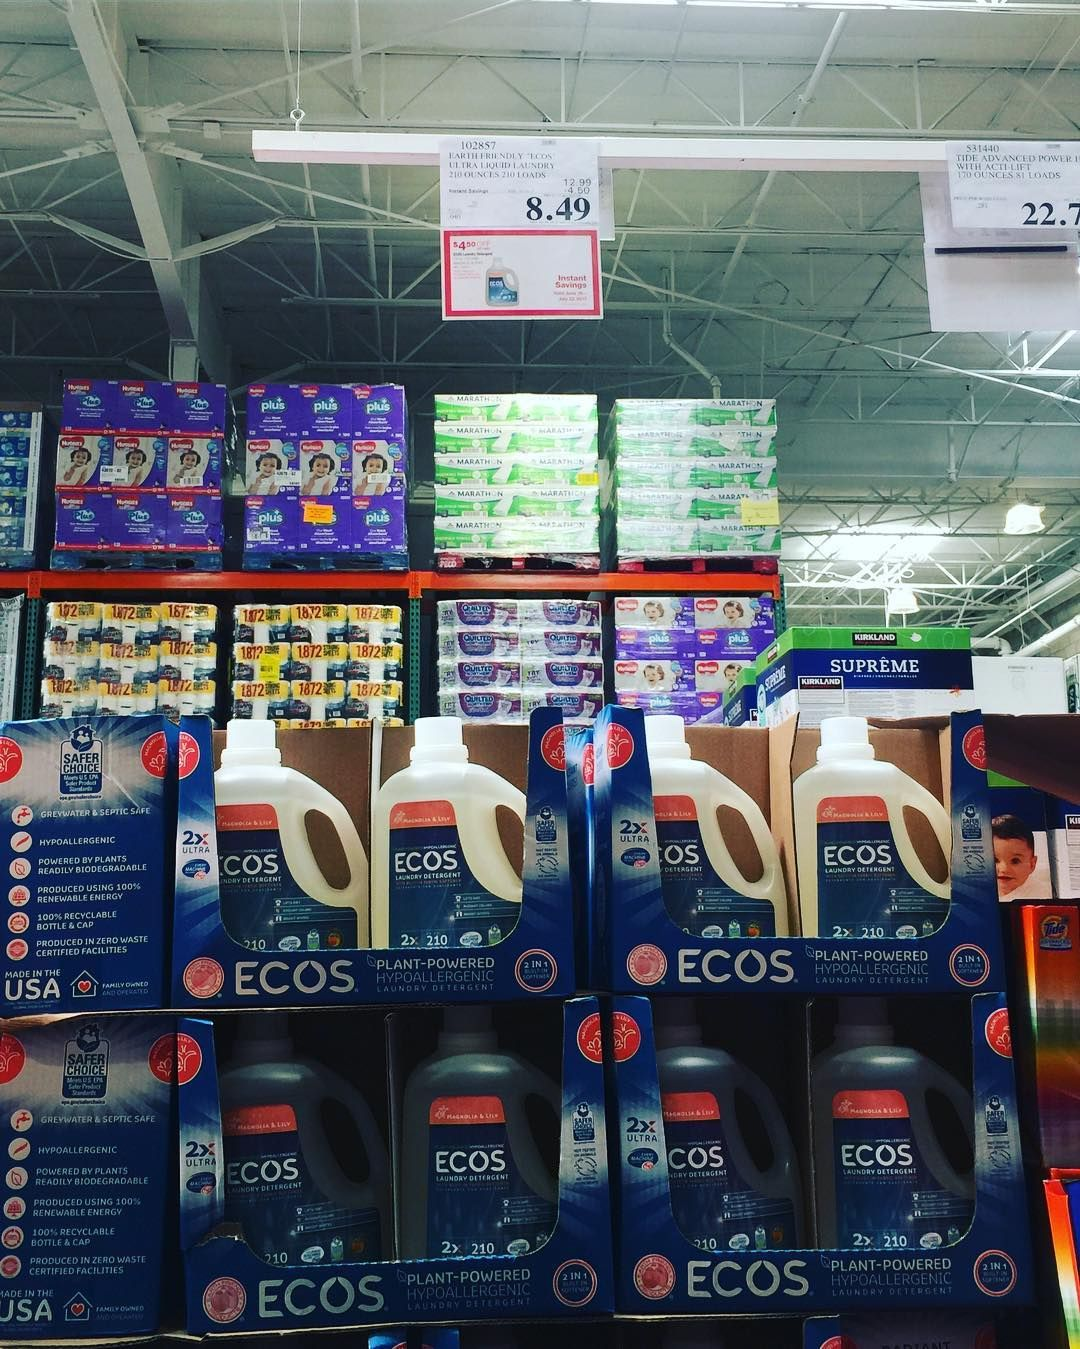 Ecos Laundry Detergent Only 8 49 That S 4 00 Off And No Limit